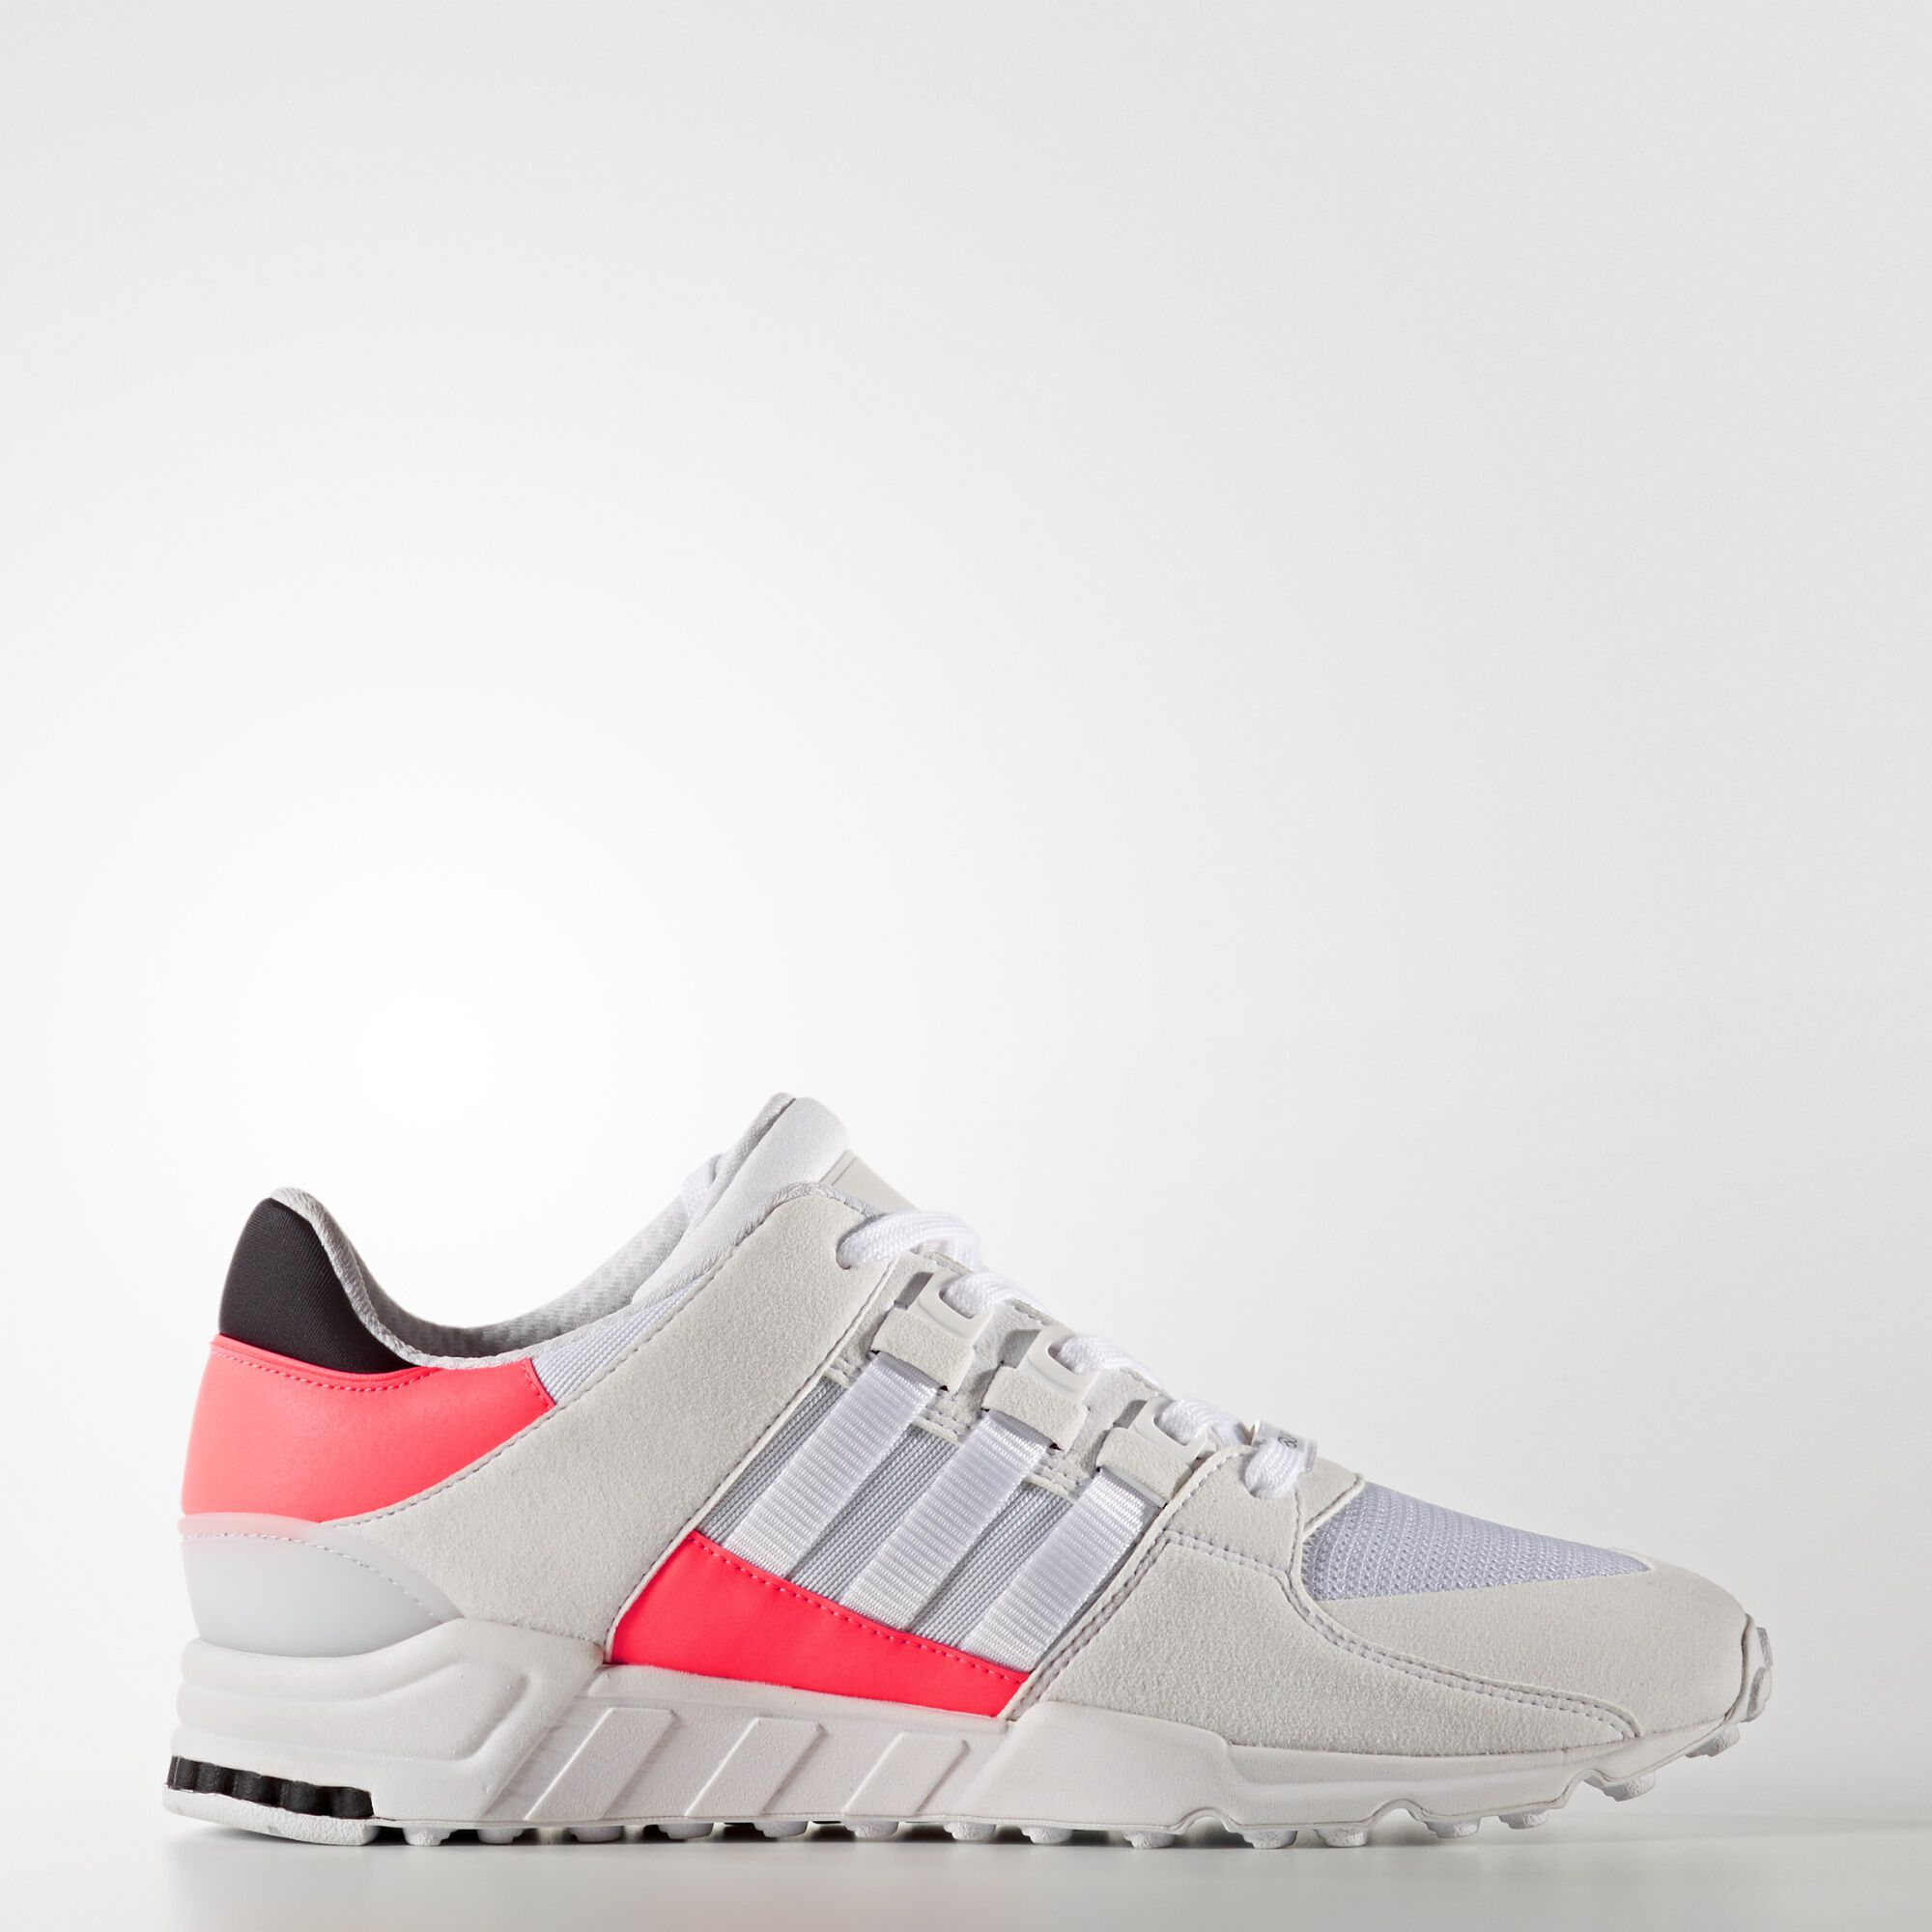 ADIDAS EQT SUPPORT ADV PK BLACK/TURBO Undefeated